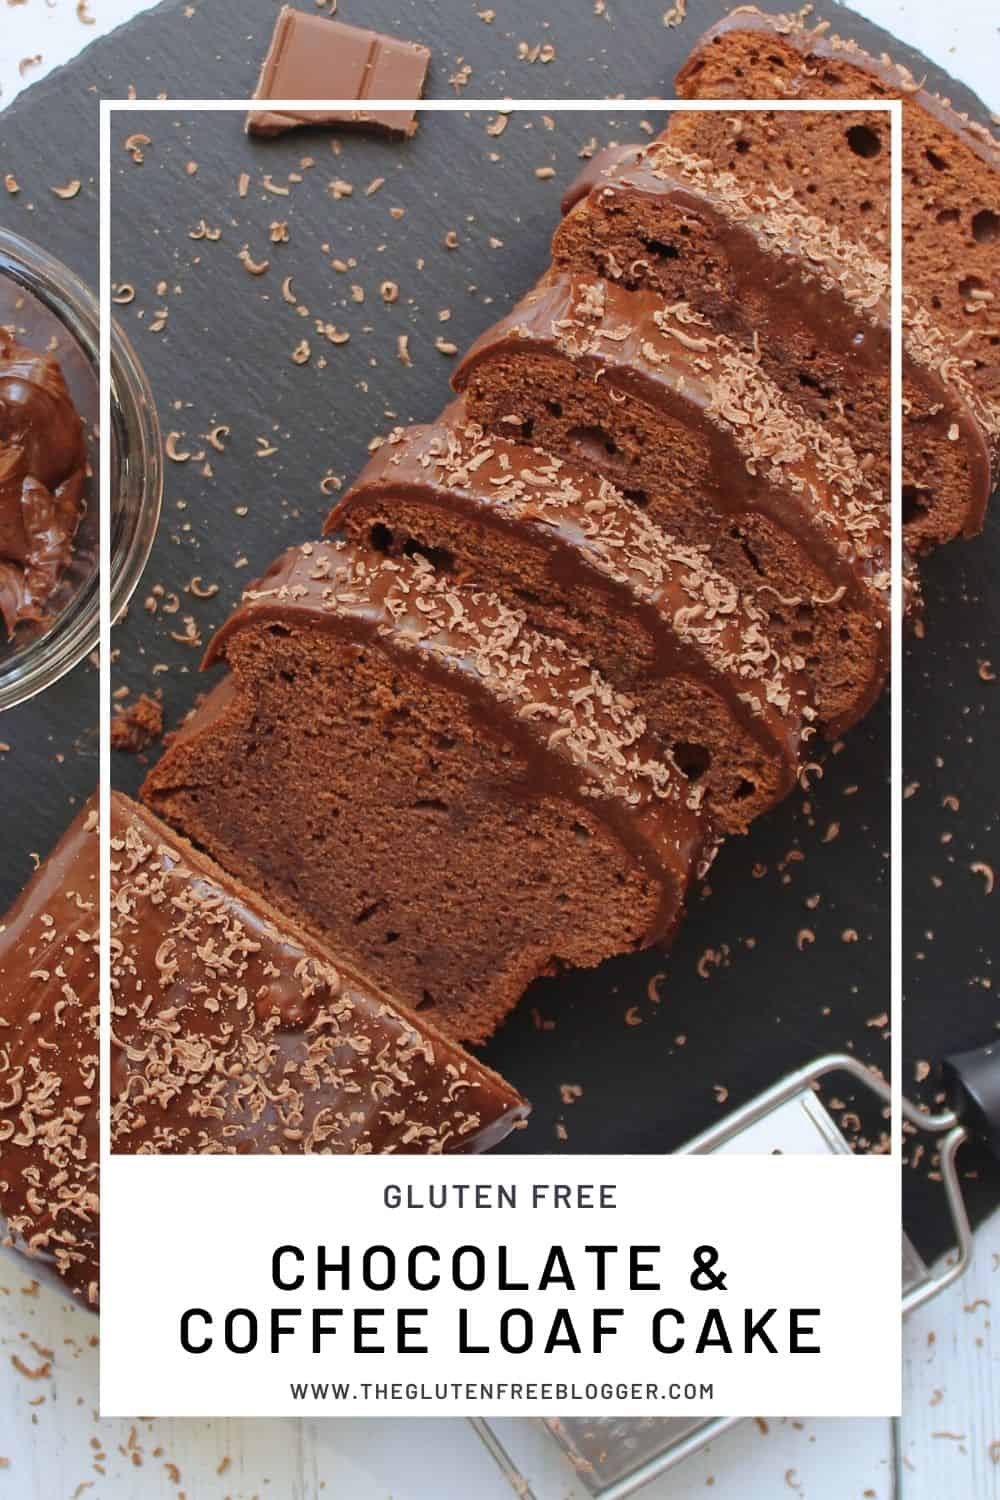 GLUTEN FREE CHOCOLATE AND COFFEE CAKE LOAF CAKE MOCHA CHOCACHINO RECIPE (2)